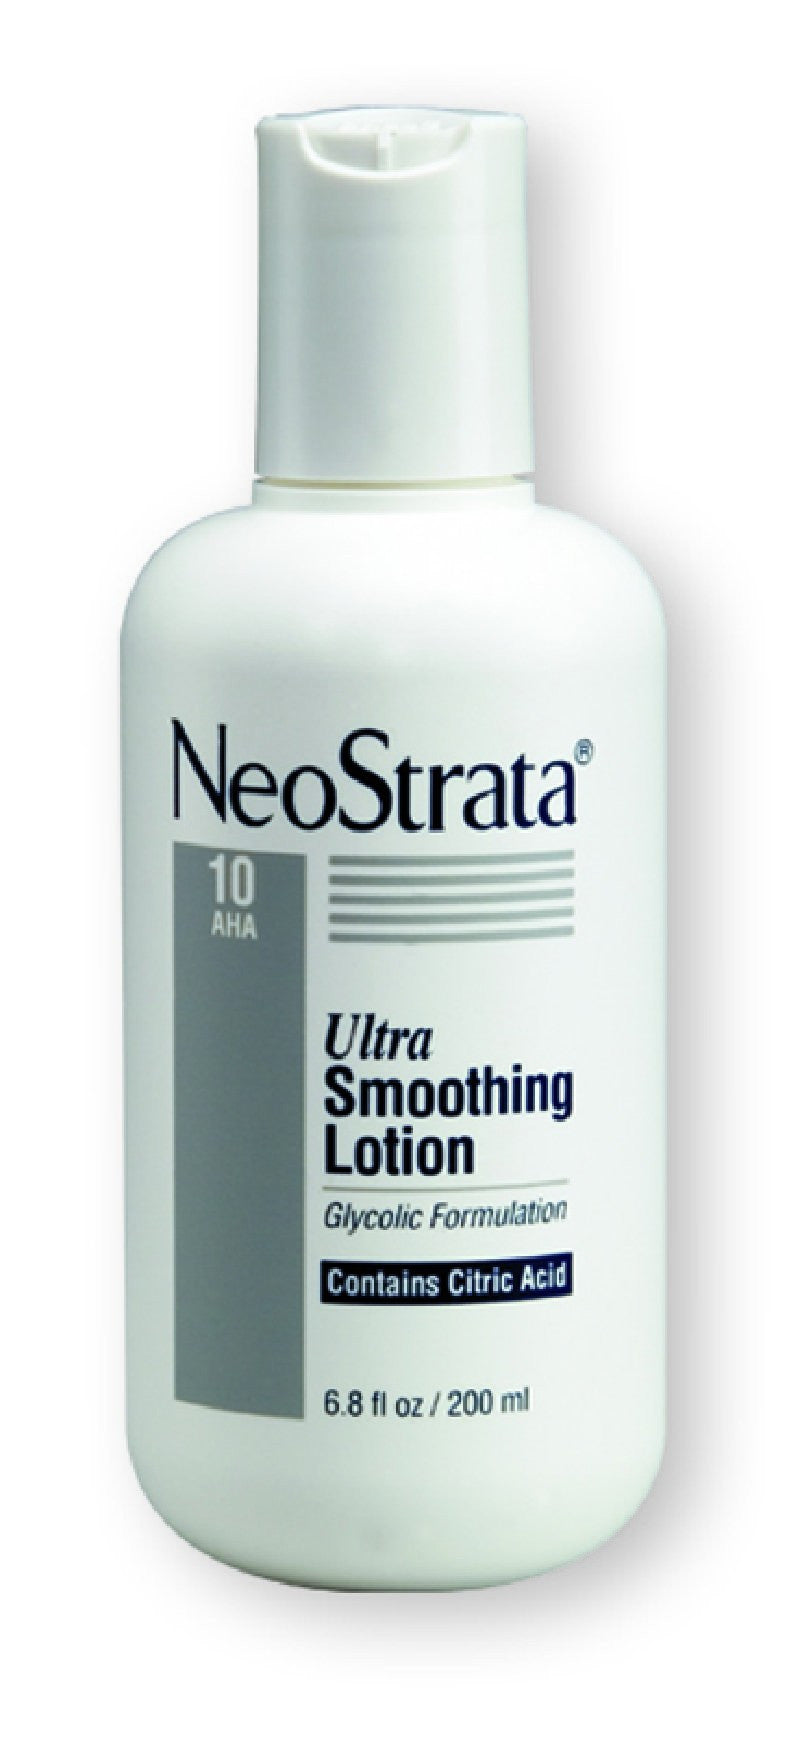 NeoStrata Ultra Smoothing Lotion 10 AHA, 6.8 oz